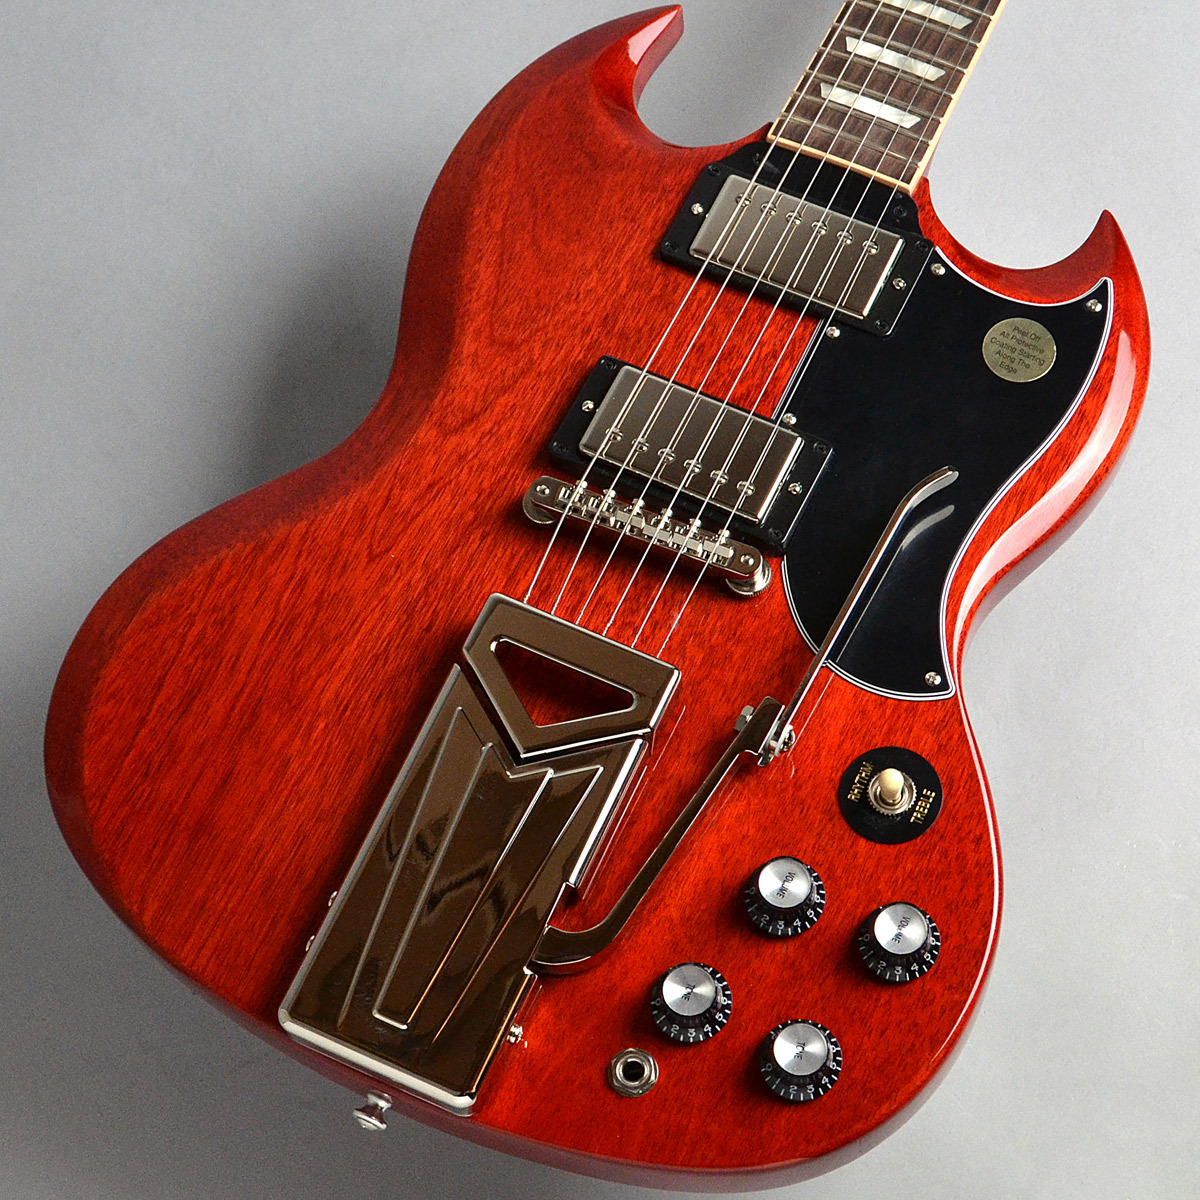 Gibson SG Standard '61 Sideways Vibrola/Vintage Cherry 2019 エレキギター 【ギブソン】【新宿PePe店】